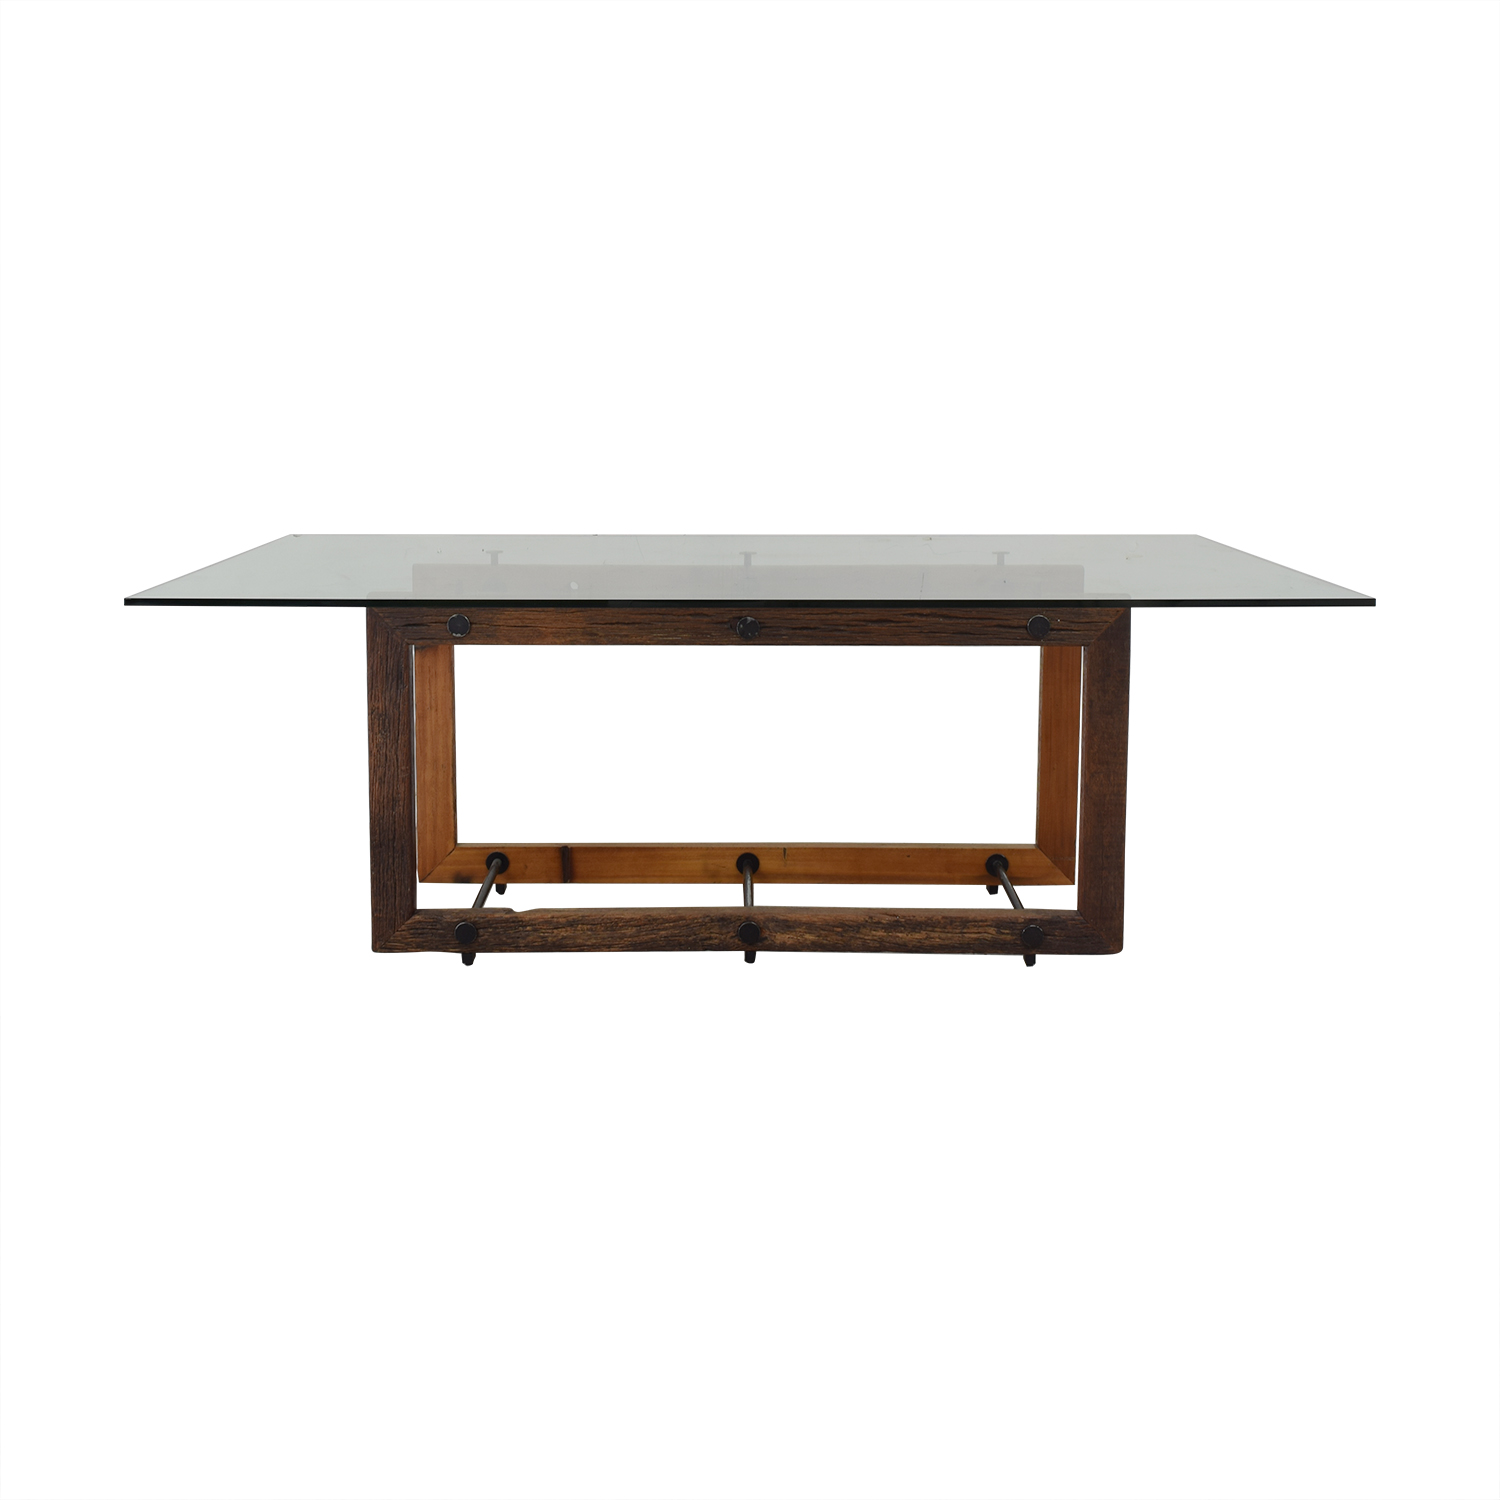 ABC Carpet & Home Glass Dining Table / Tables